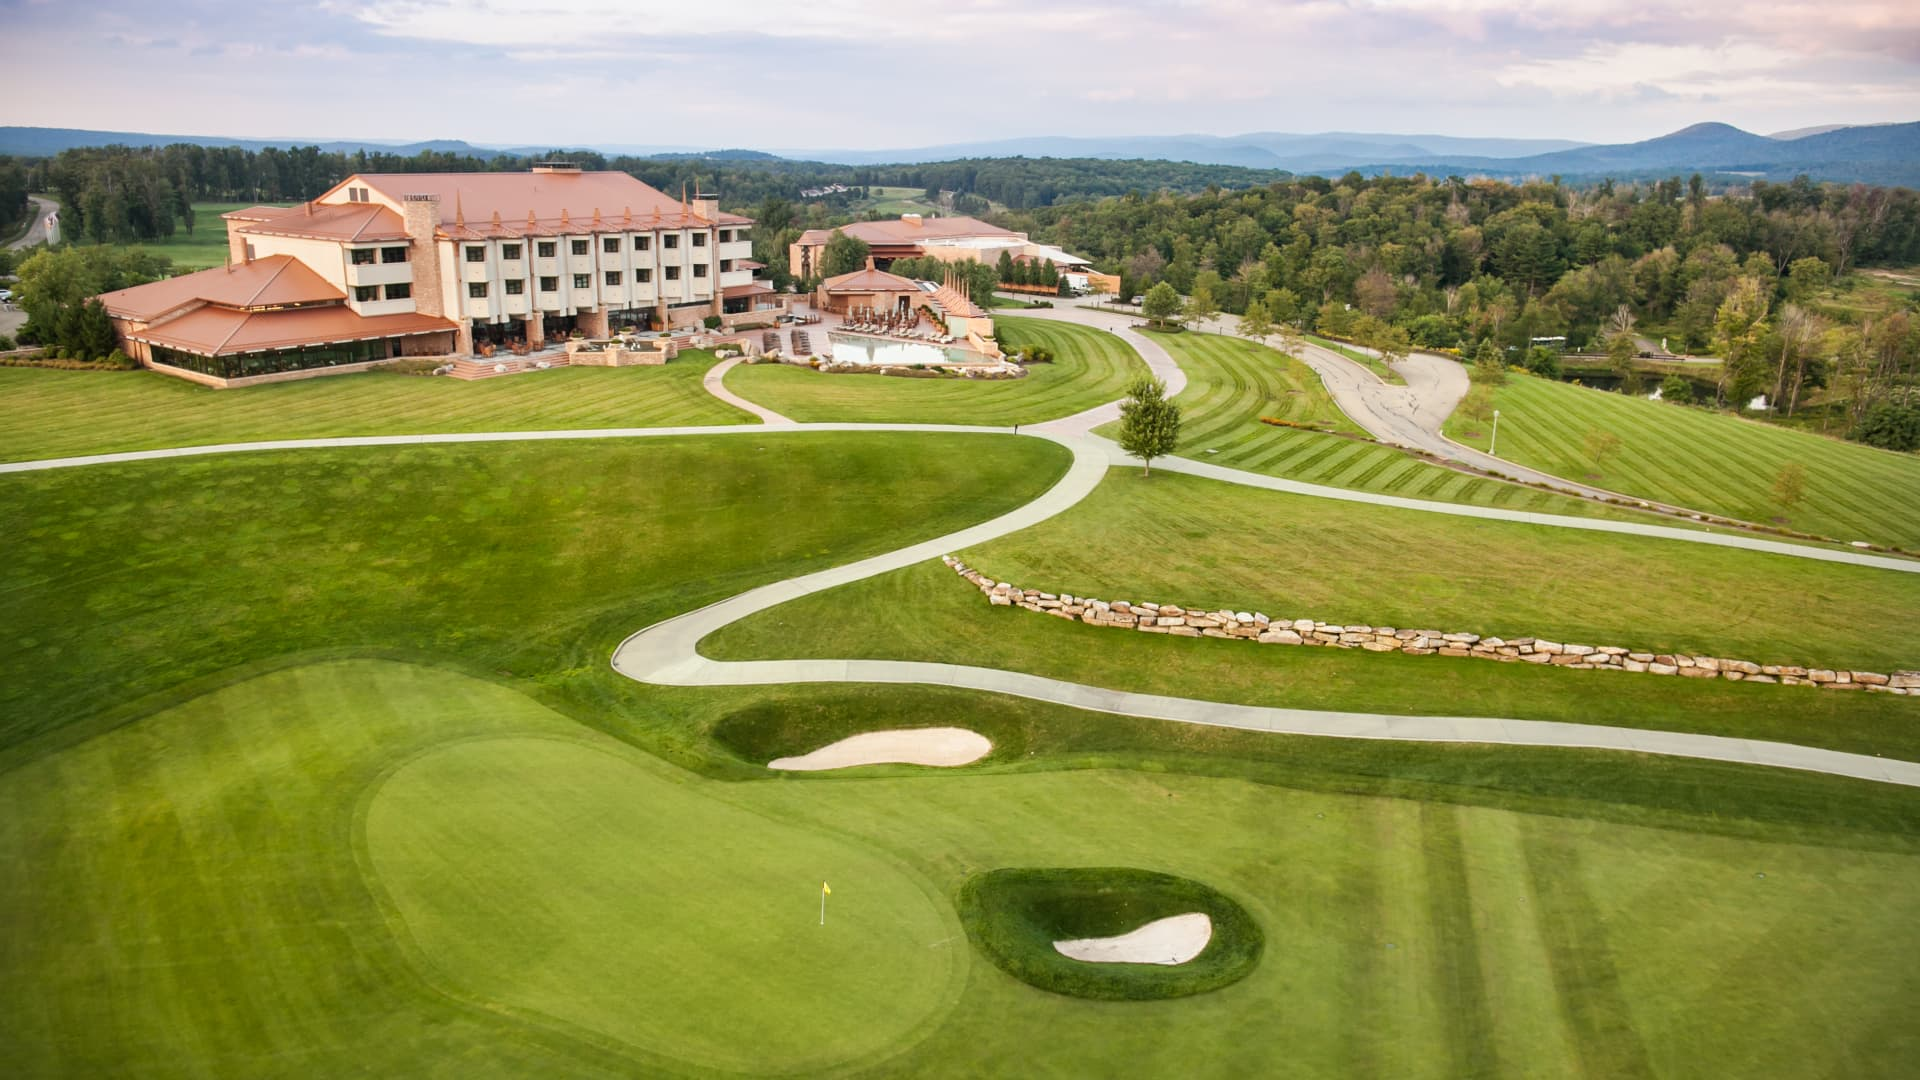 One of Nemacolin's two golf courses